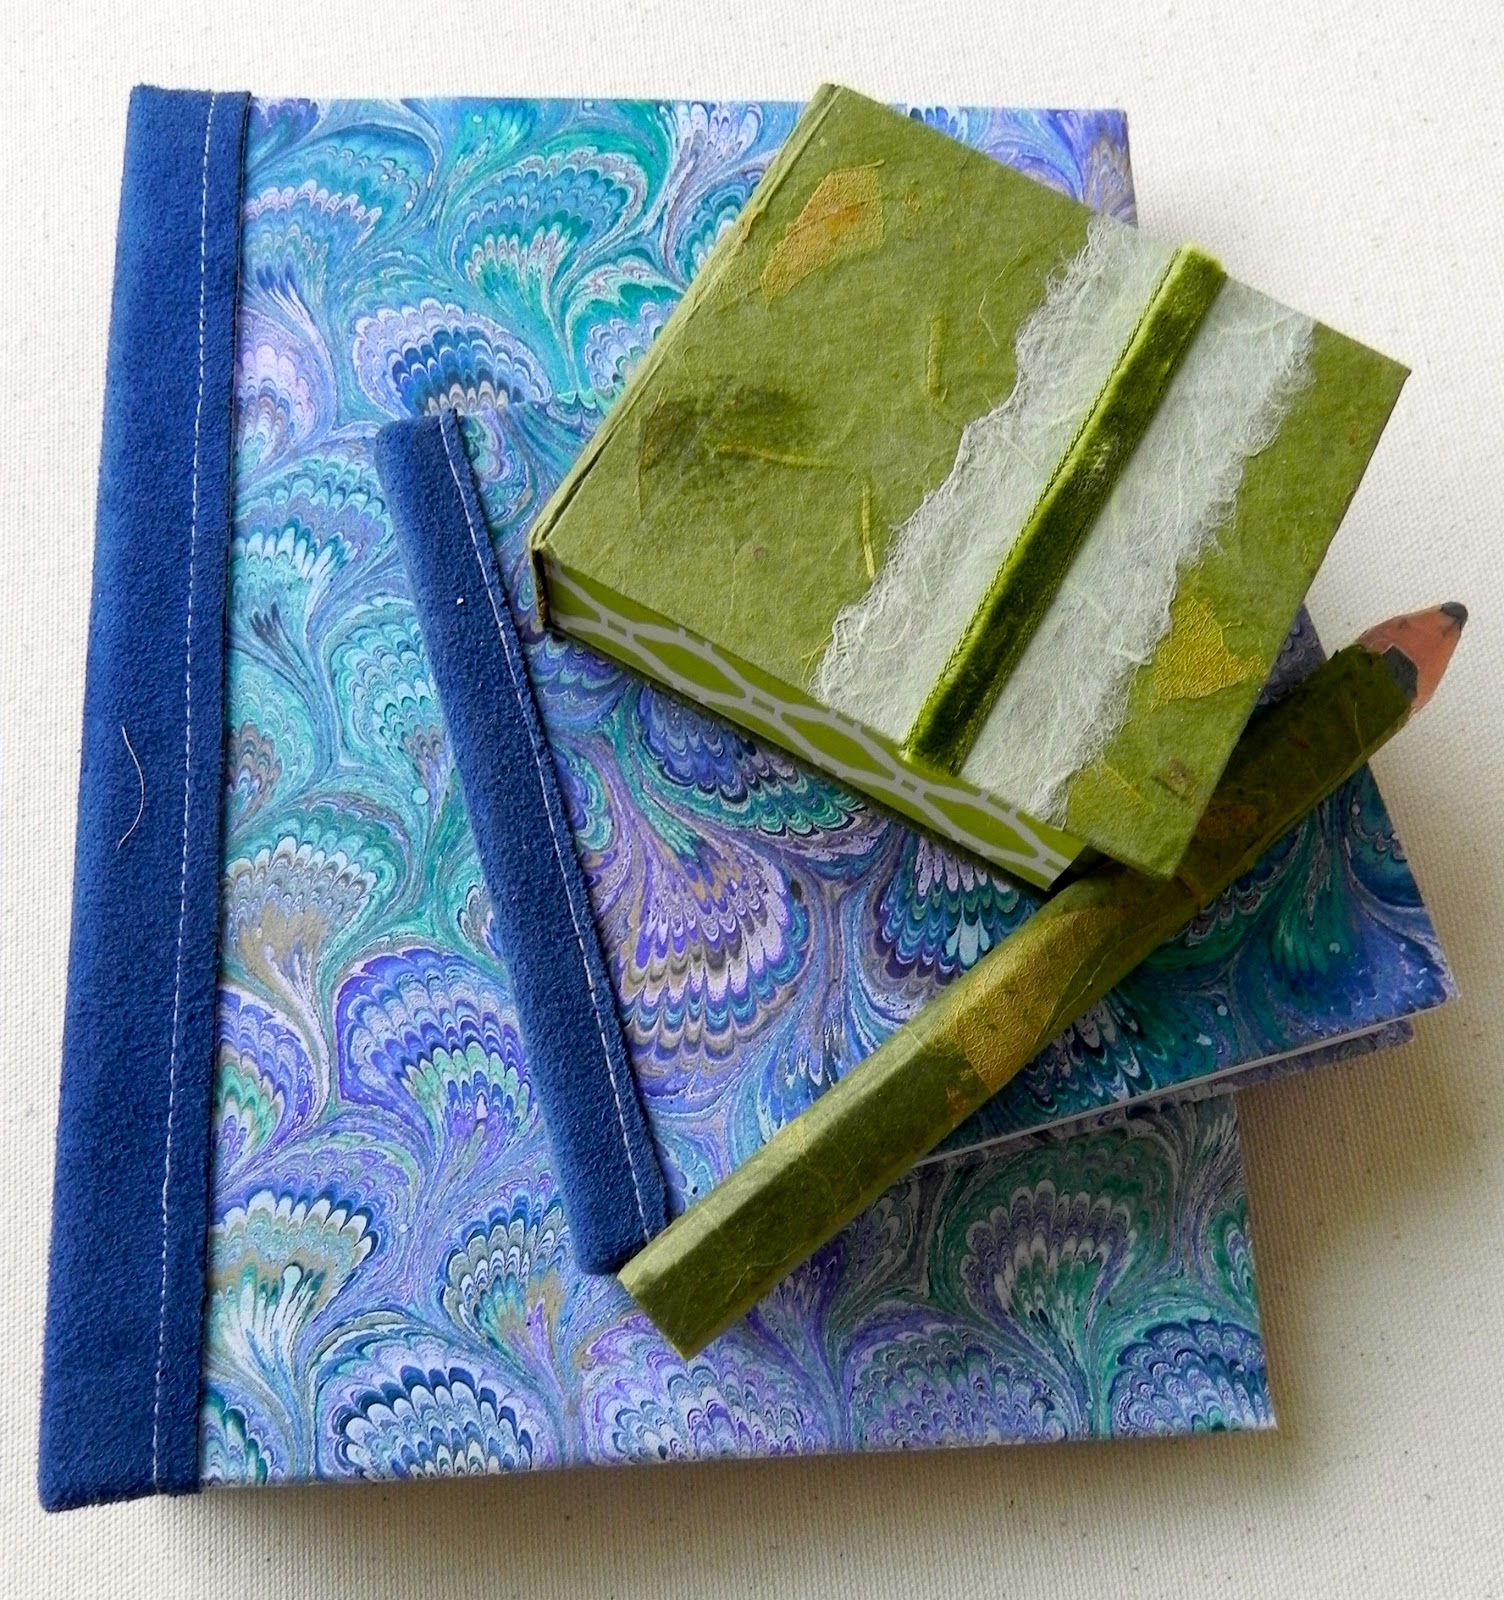 Summerland Cottage Studio: Binders And Book Covers